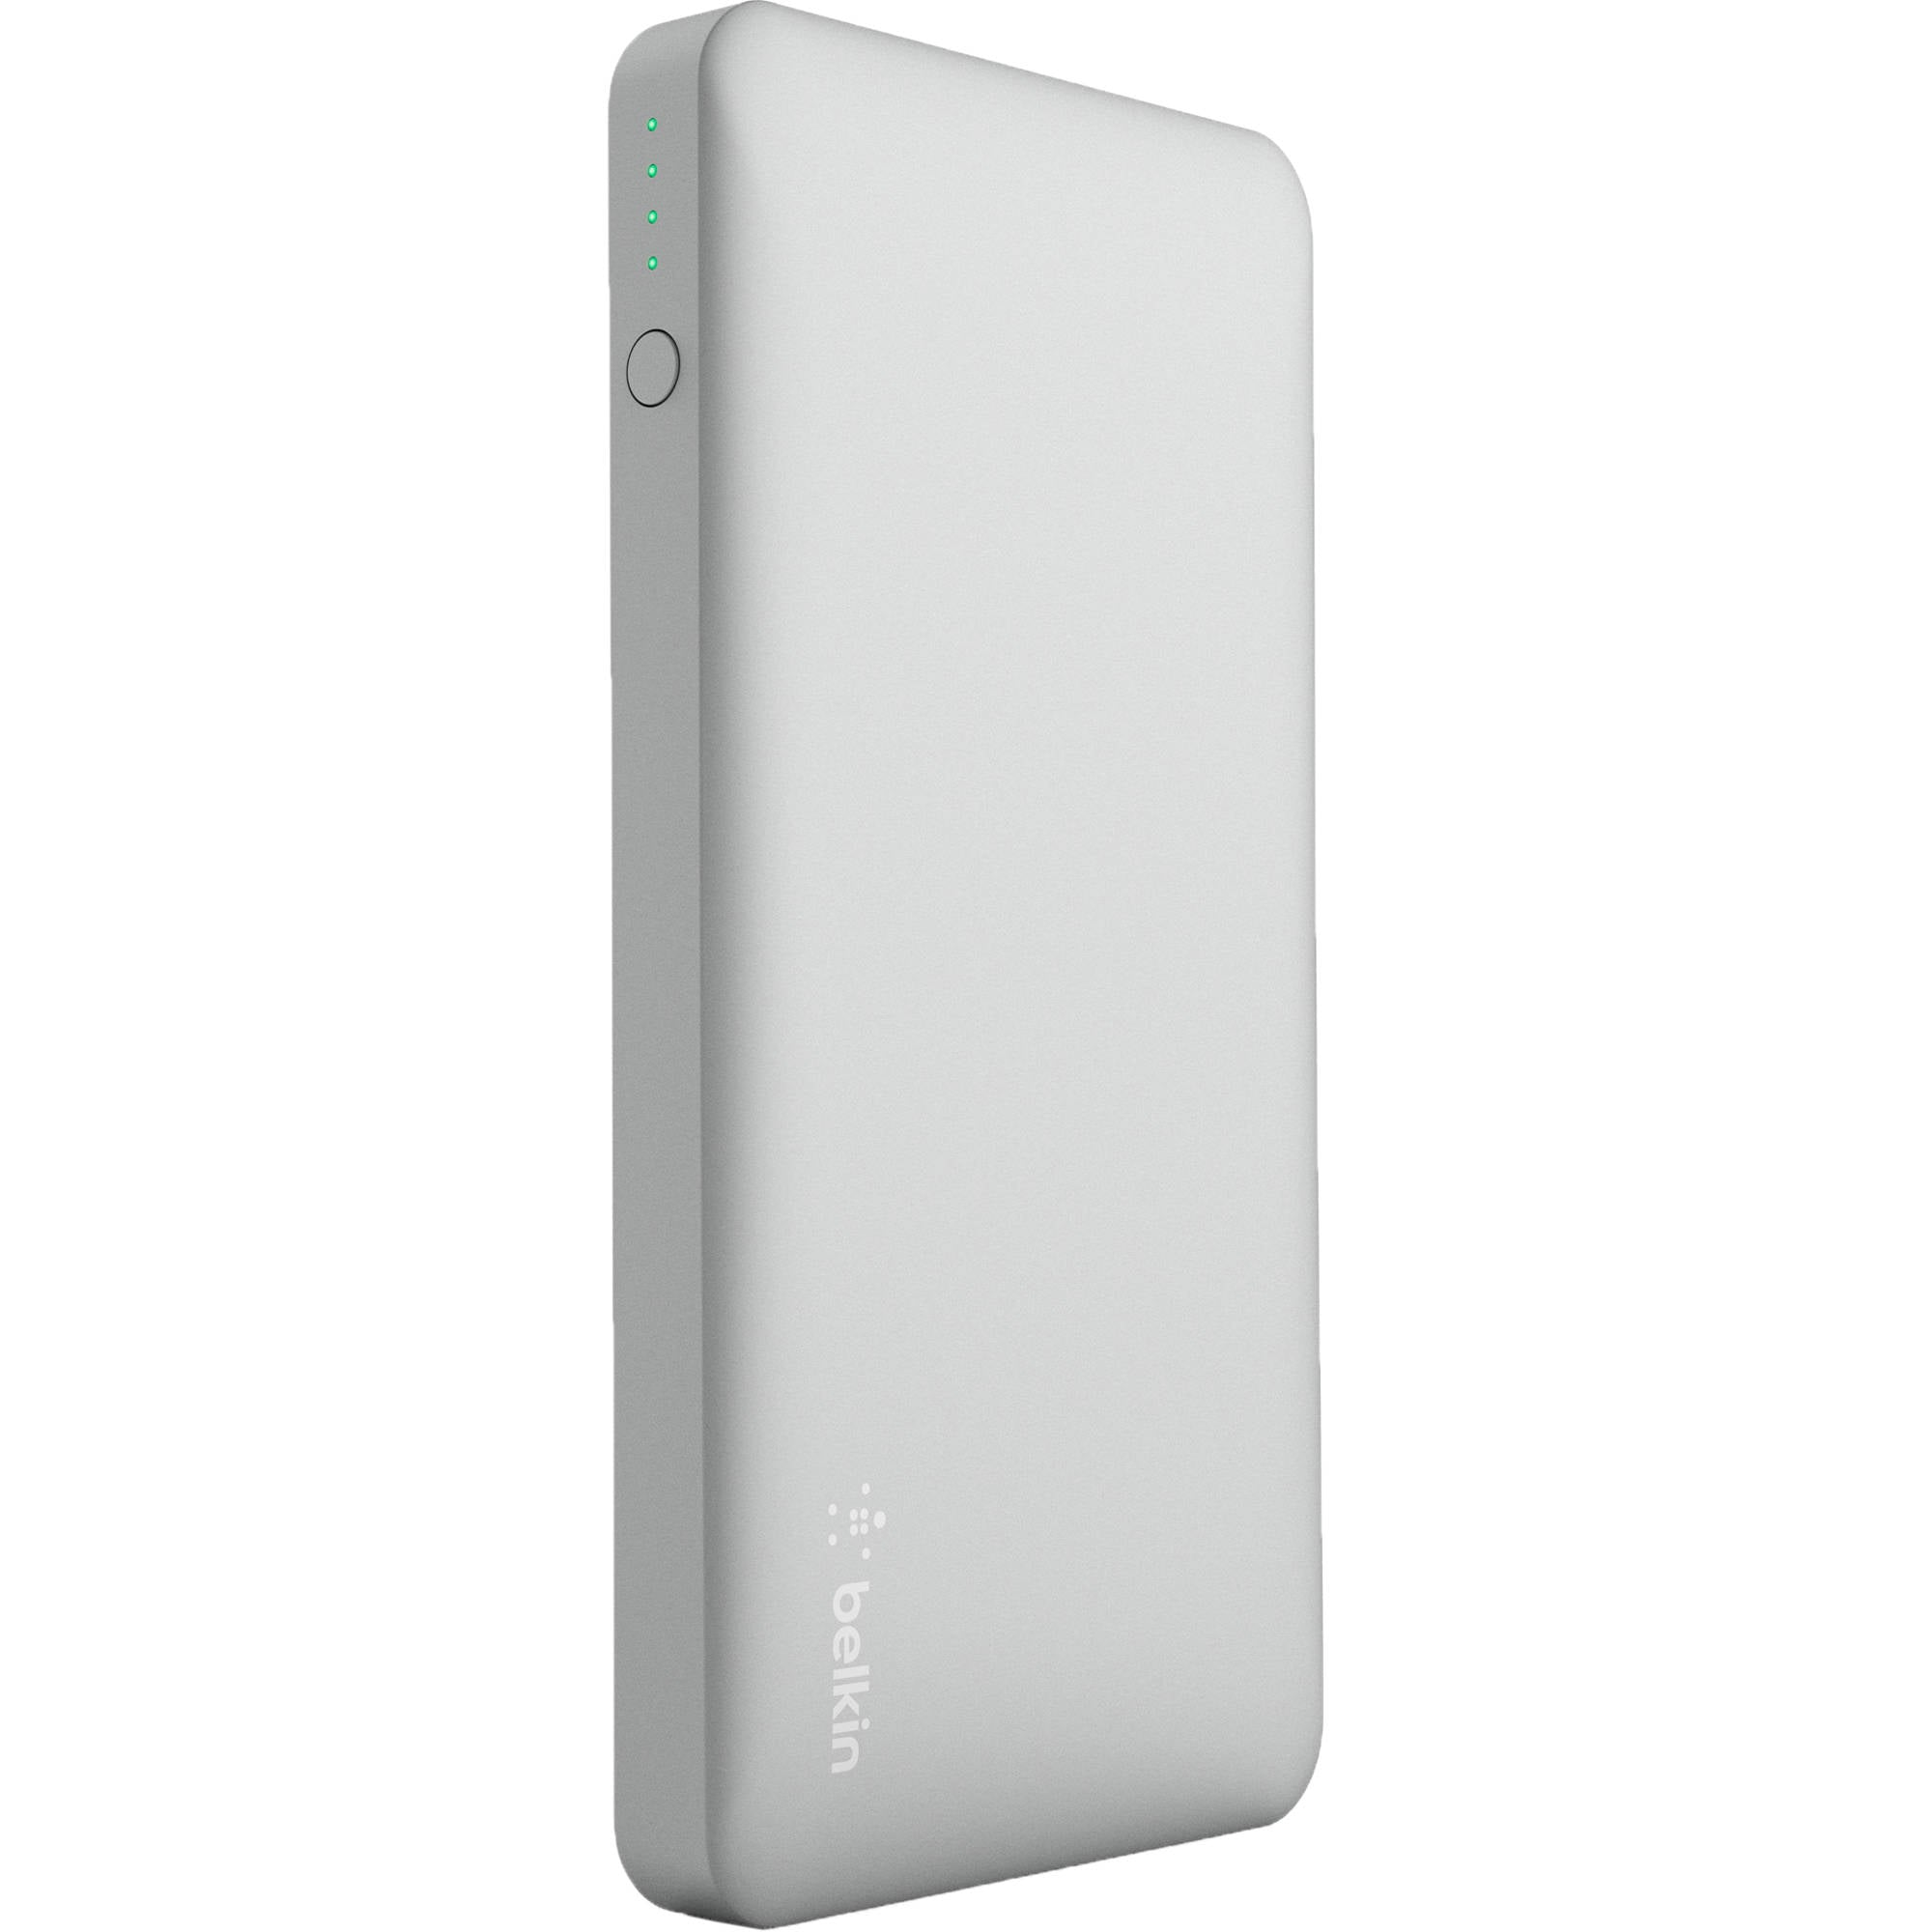 Belkin Pocket Power Bank 10000 mAh Fast Charger (Certified Safety)